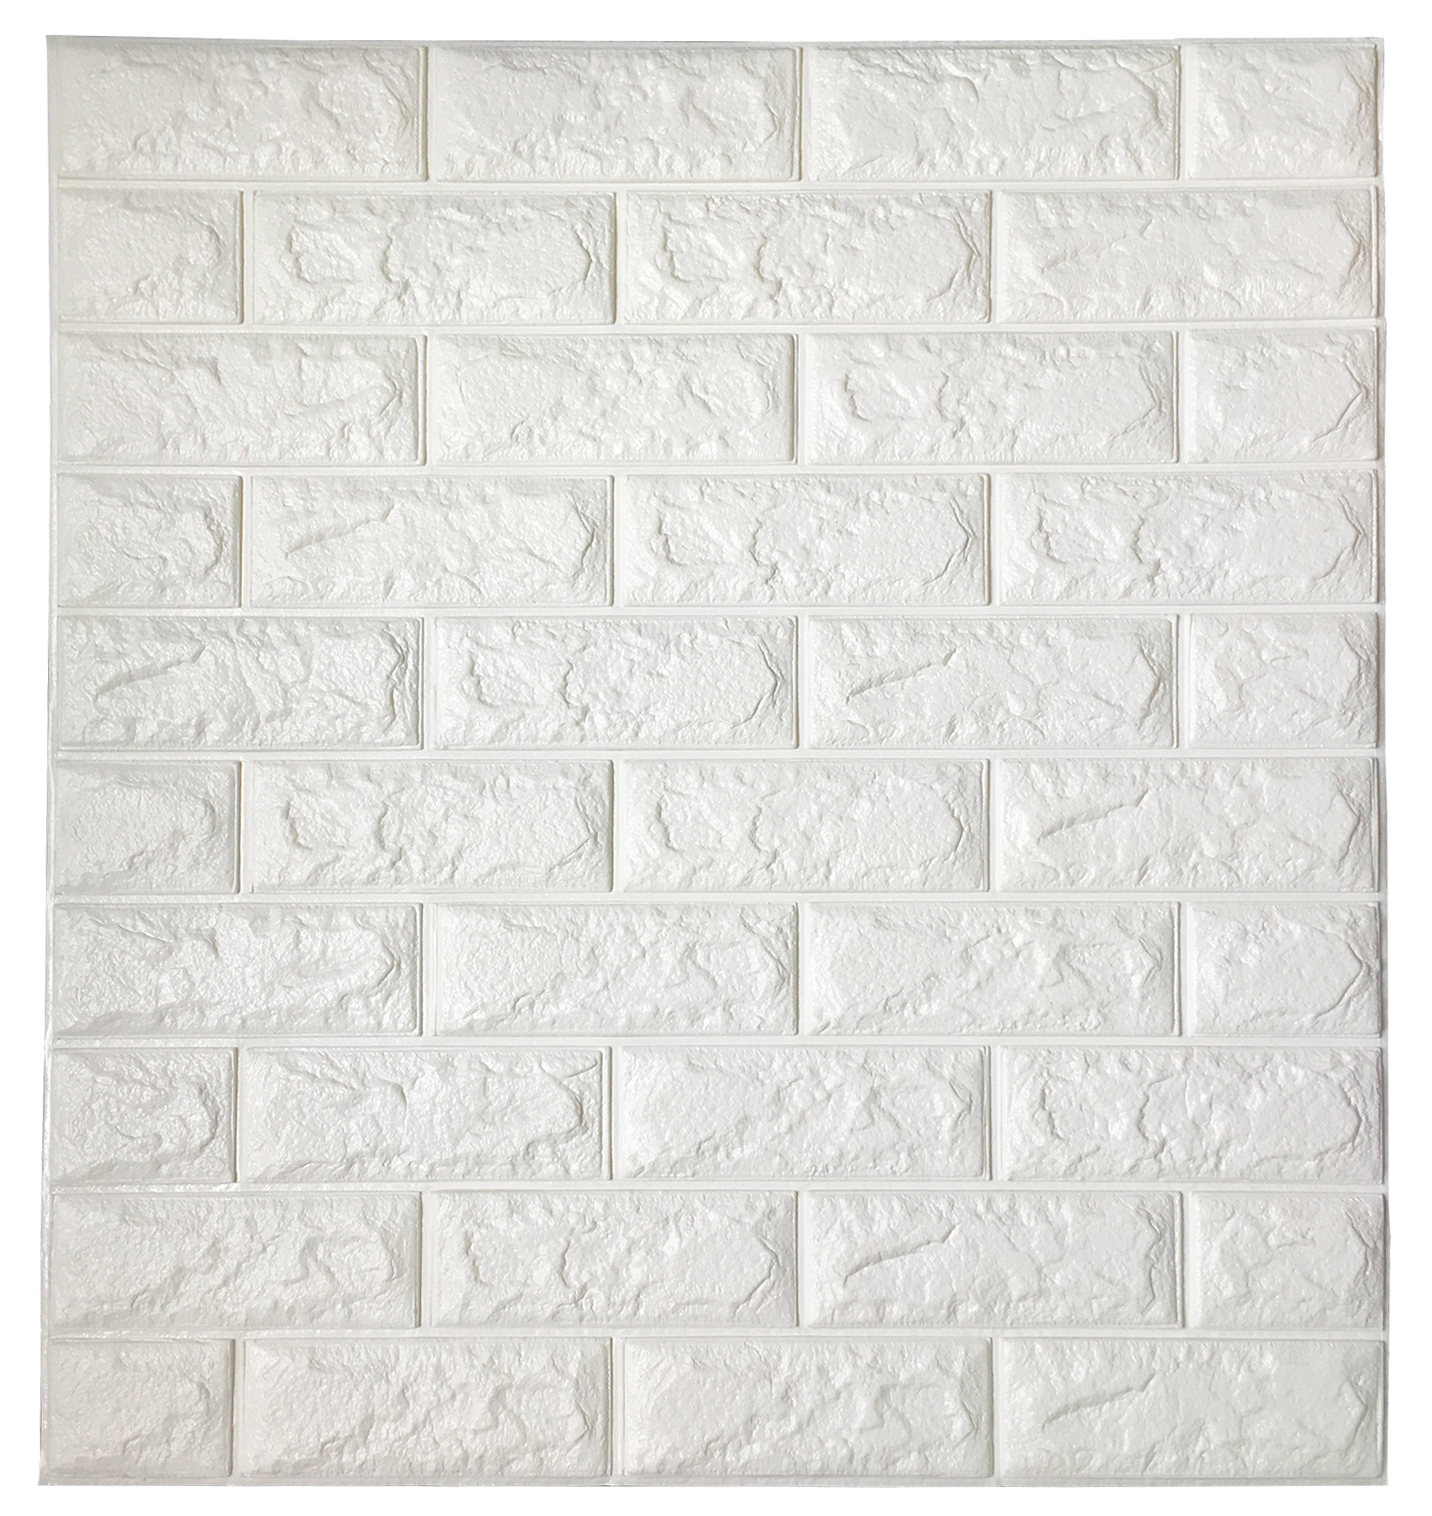 Peel stick 3d wall panels white 3d brick wallpaper 2 6 for 3d brick wall covering